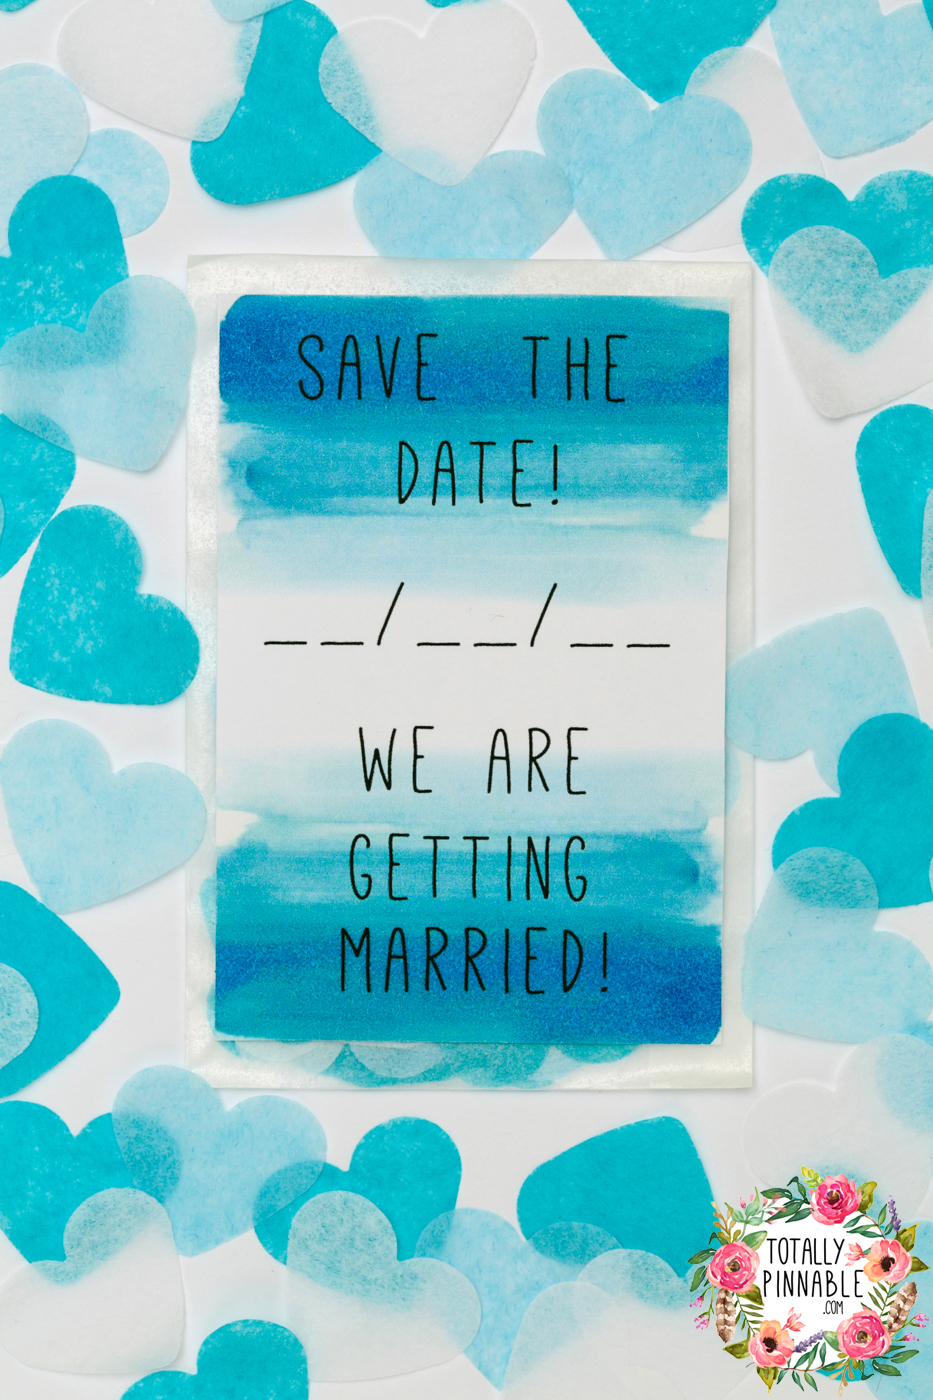 'save the date' we are getting married confetti filled envelope by totallypinnable.com